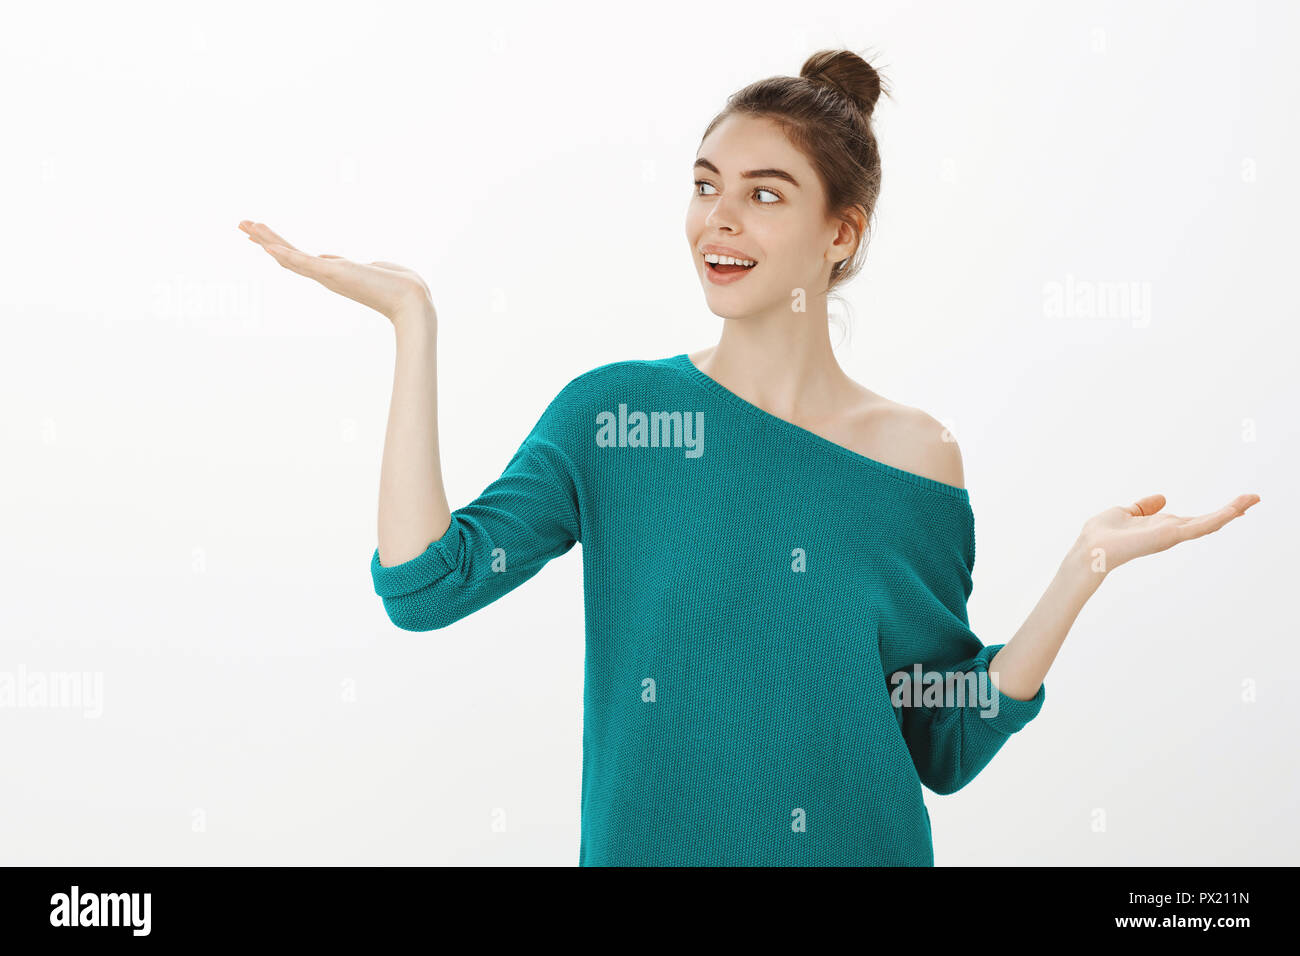 Girl weight choices and made decision. Portrait of good-looking happy woman with bun hairstyle, looking at raised palm while thinking about opportunities, smiling while gazing left over gray wall - Stock Image